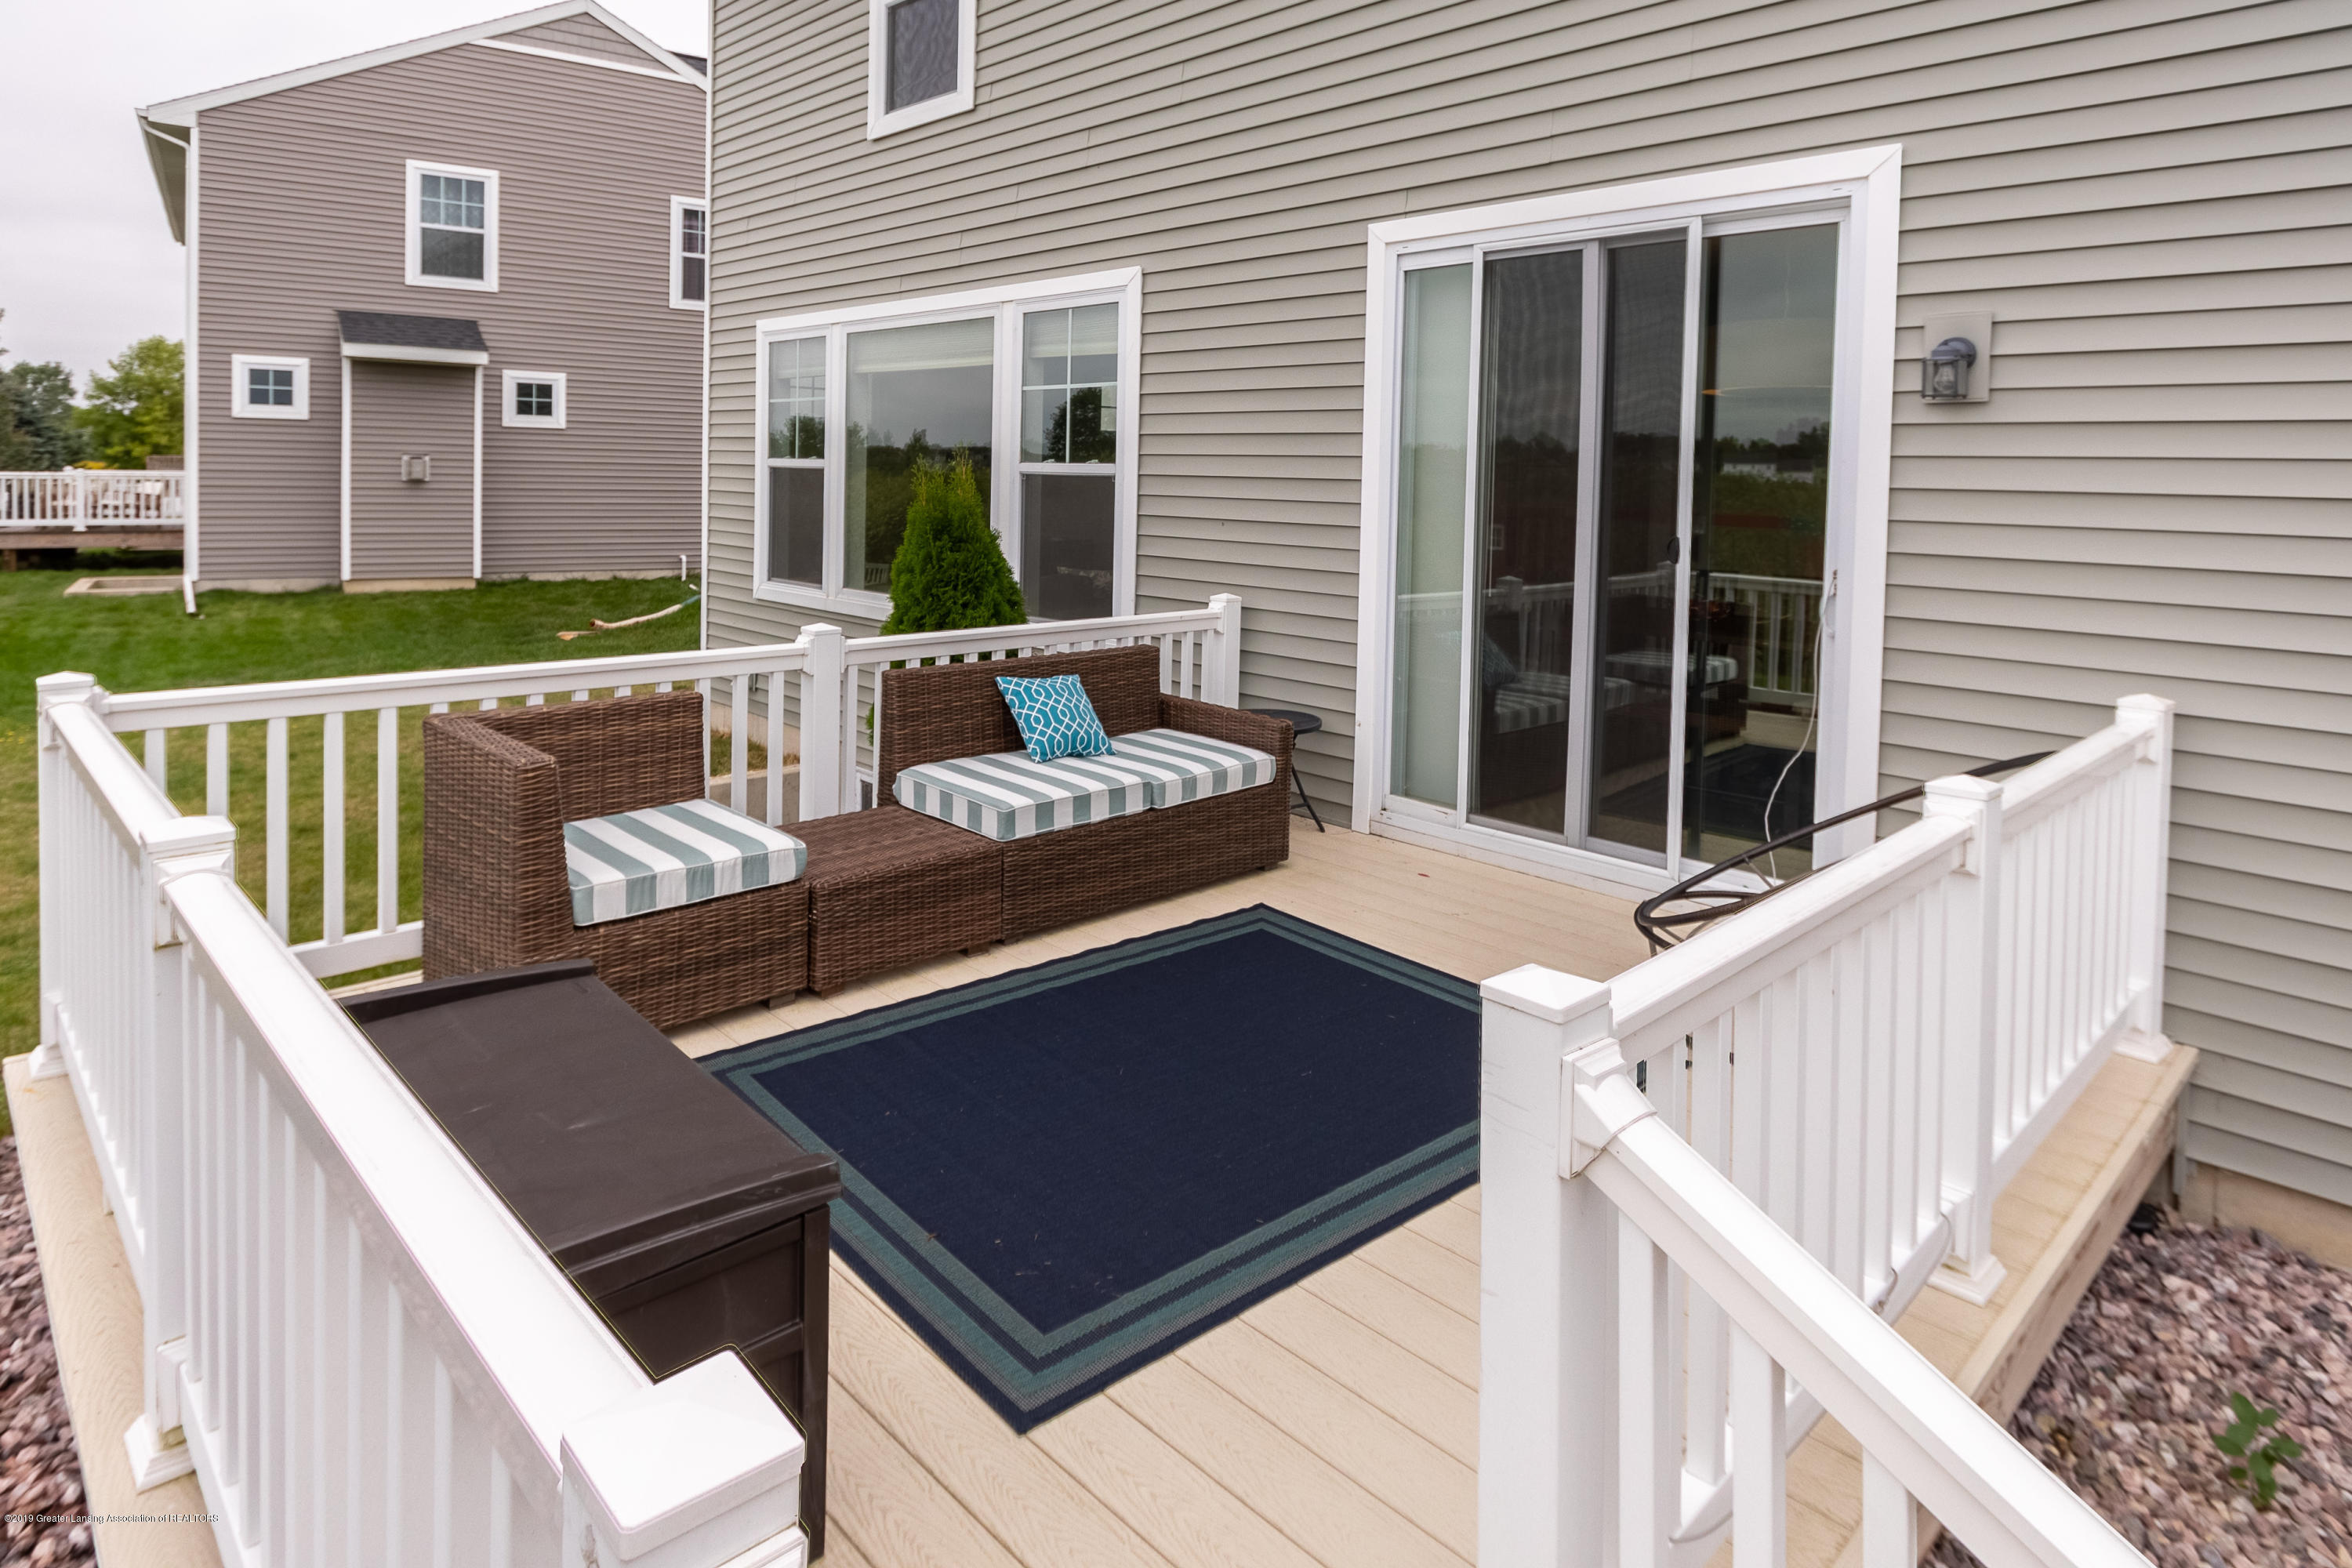 3758 Shearwater Ln - Composite Deck - 46